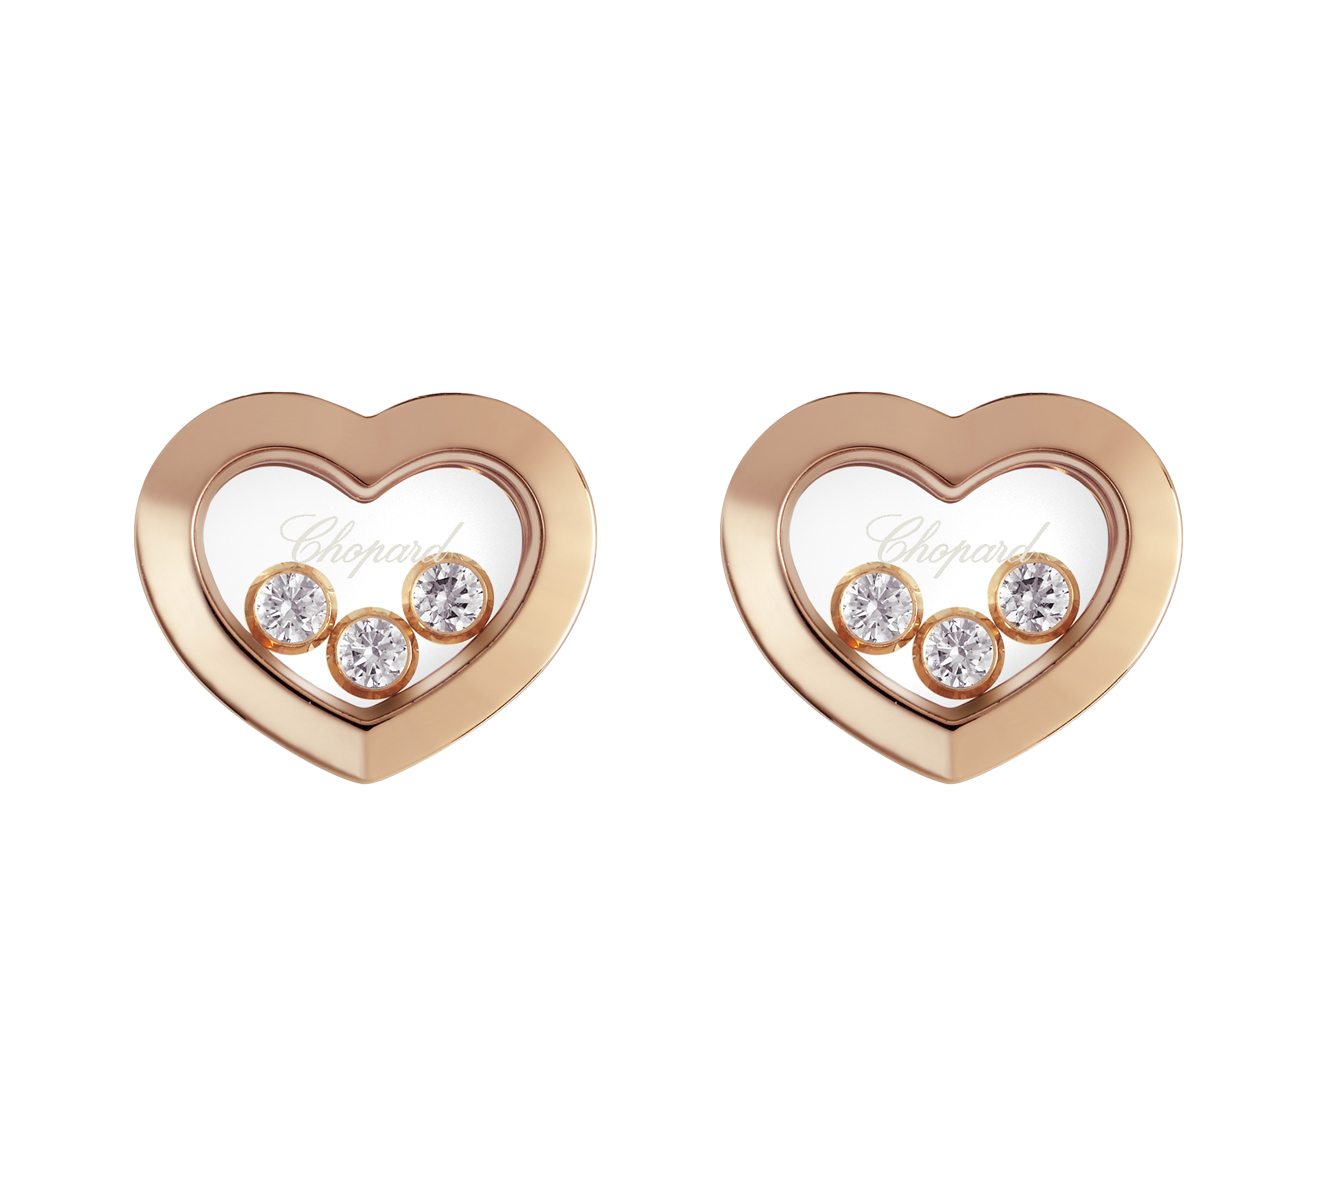 Серьги Icons Heart Chopard Happy Diamonds 83A611-5001 - фото 1 – Mercury